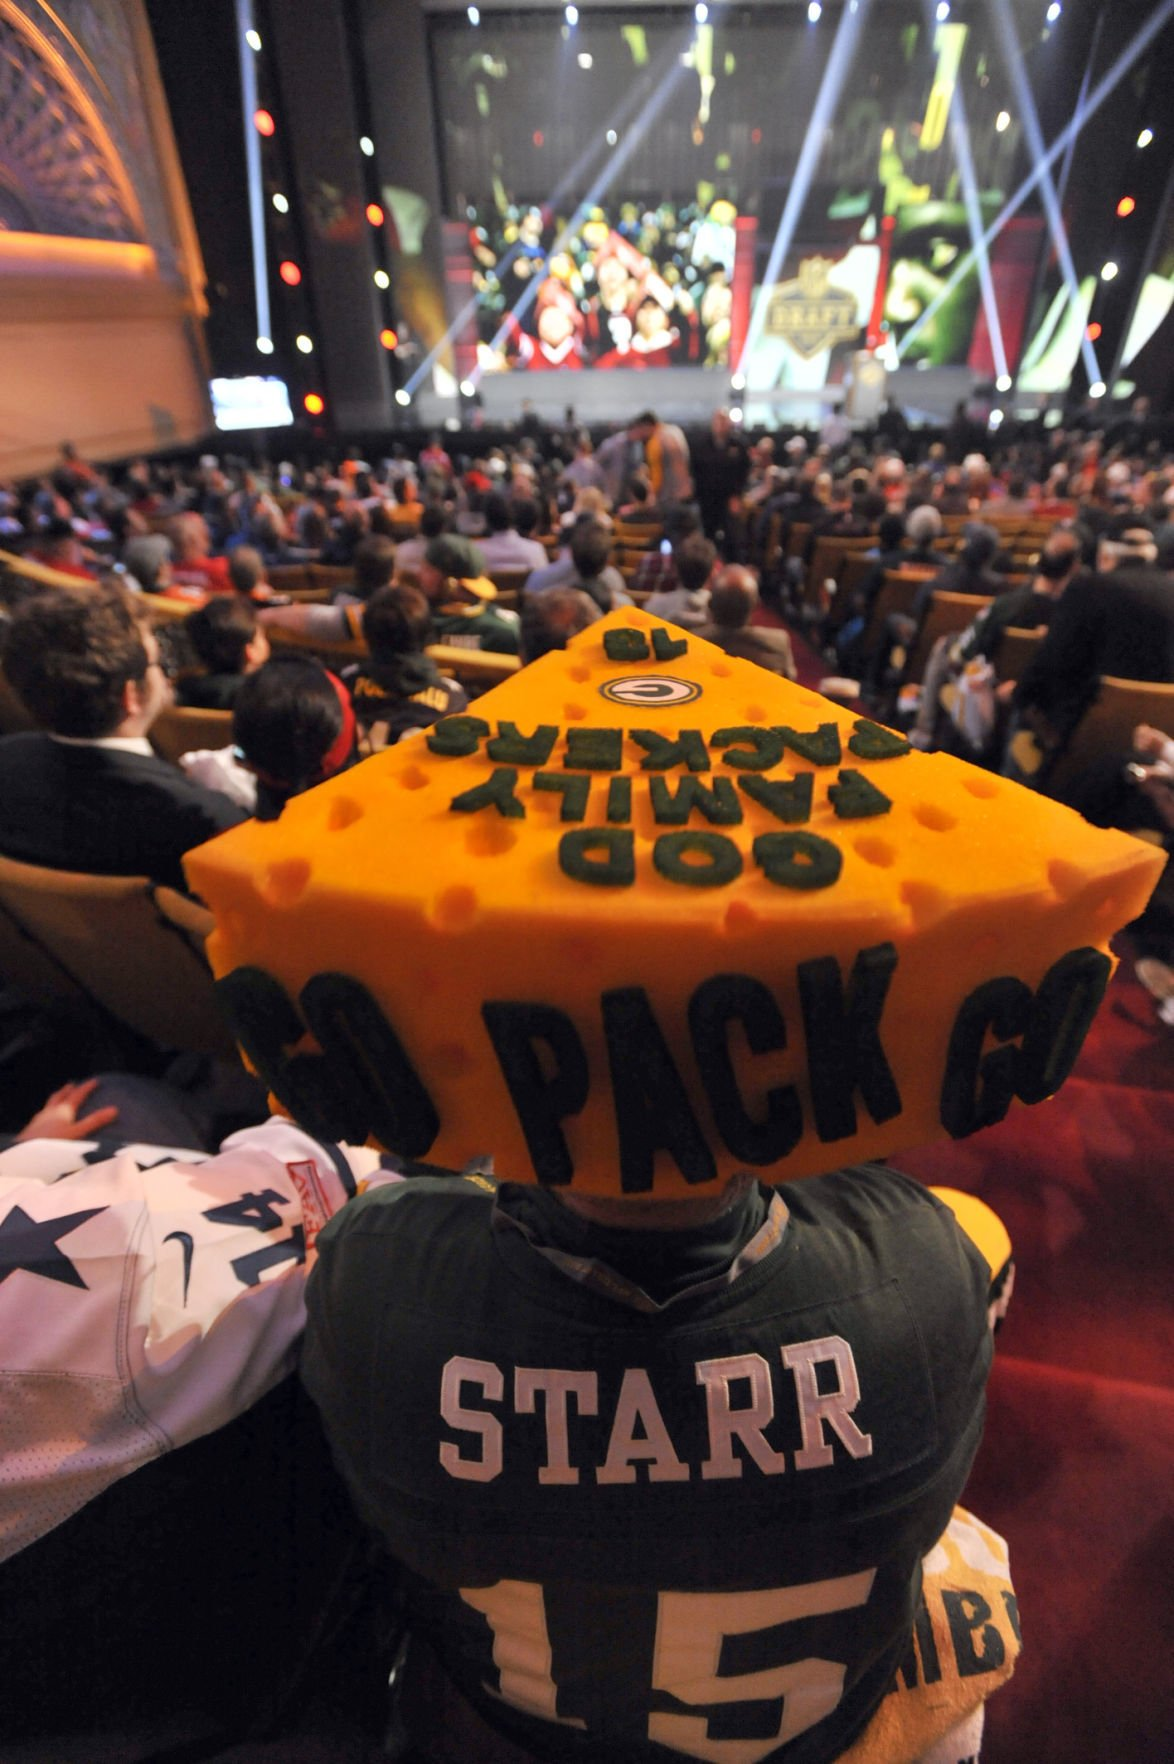 Packers fan in cheesehead at 2015 NFL draft, AP photo